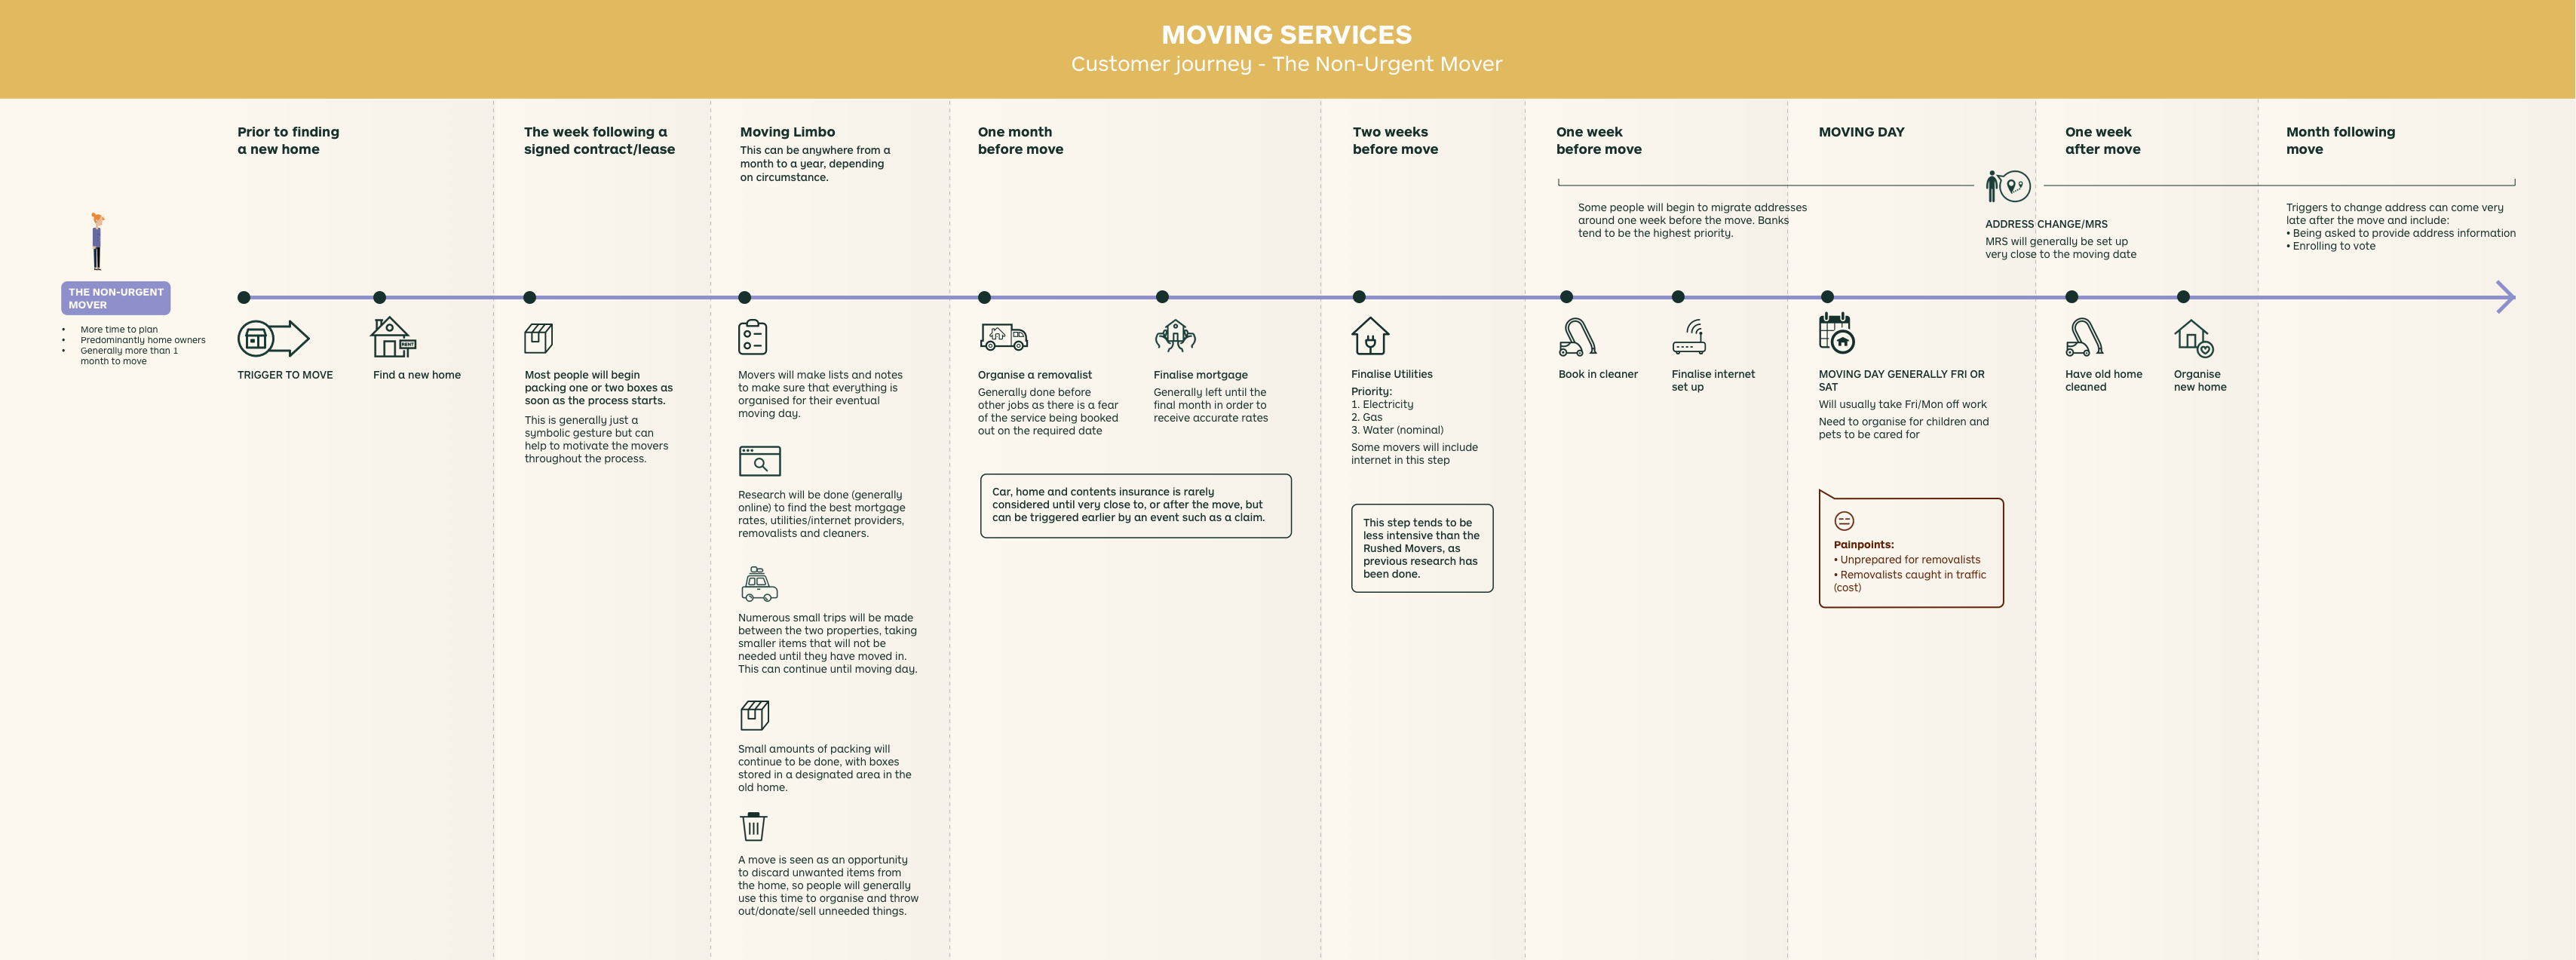 I then designed the customer journey maps in Sketch